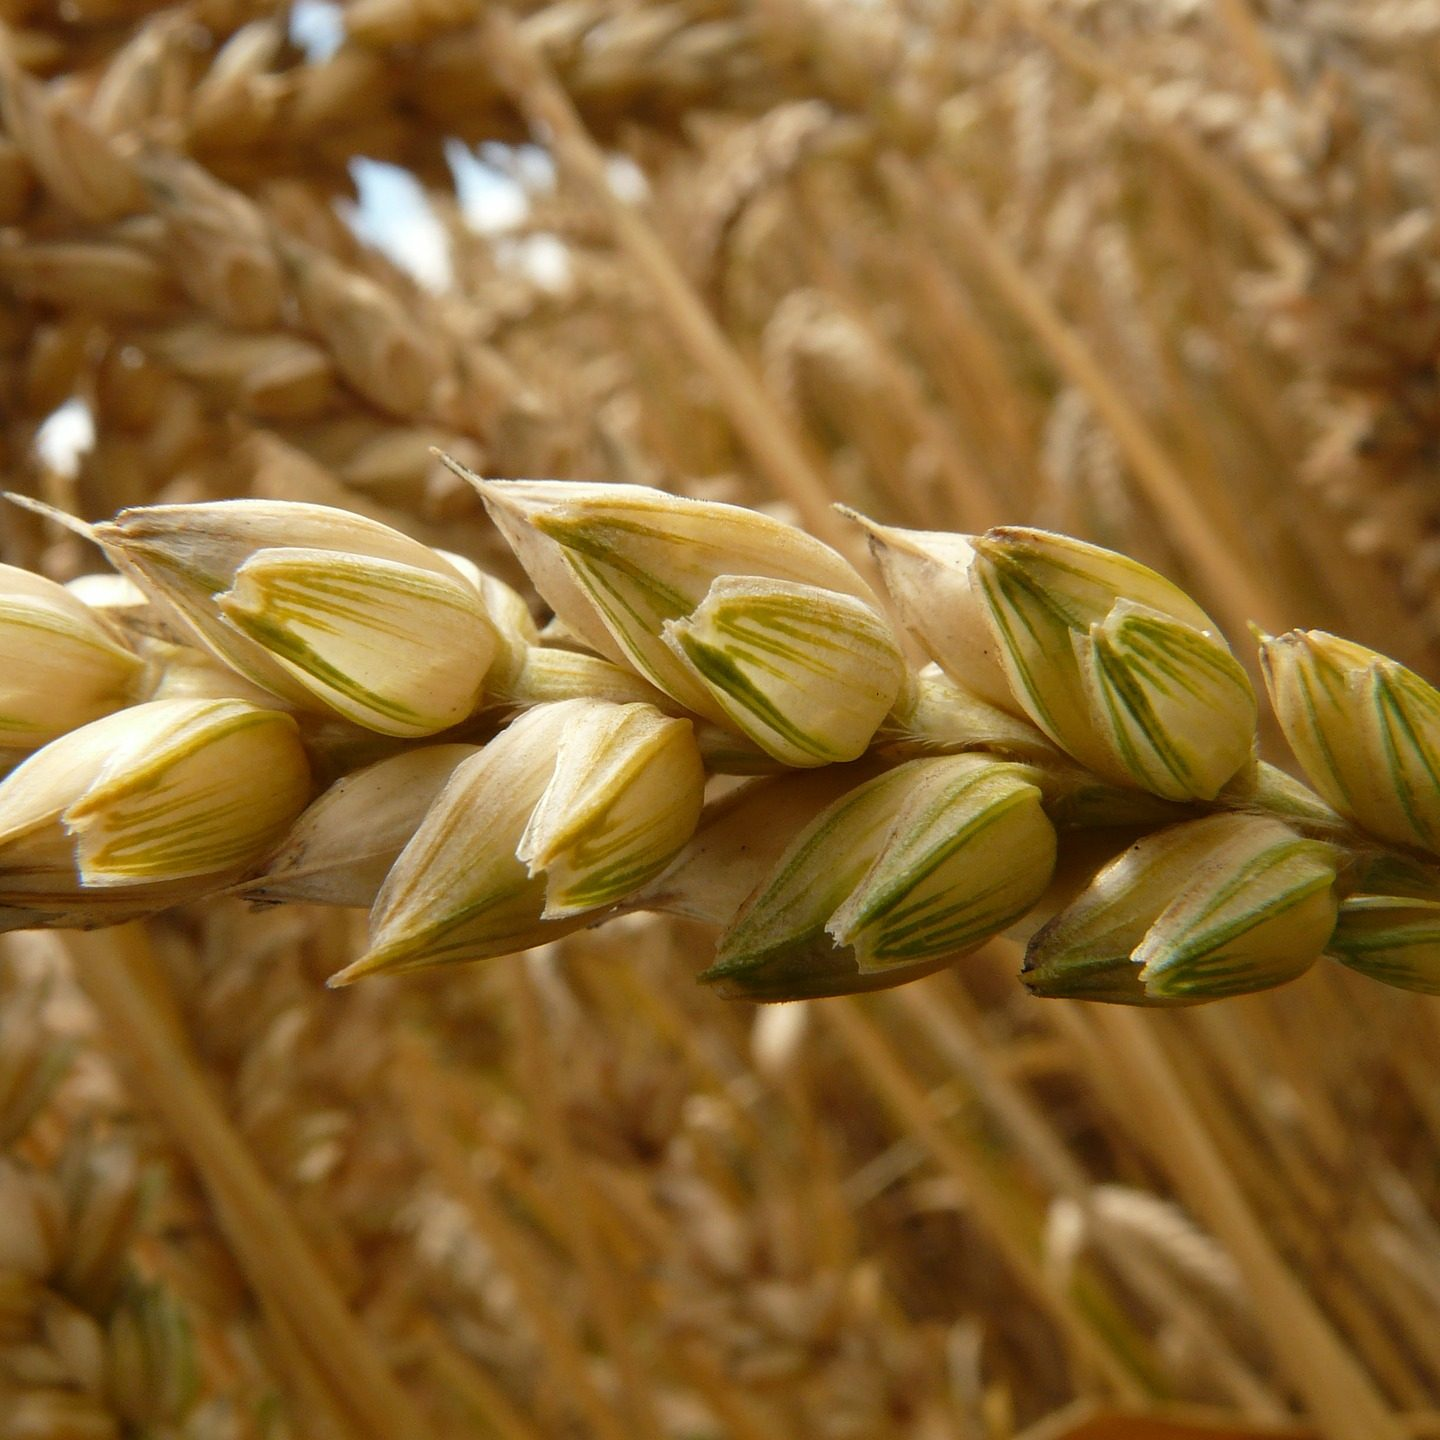 Iron-rich GM wheat set to undergo field trials